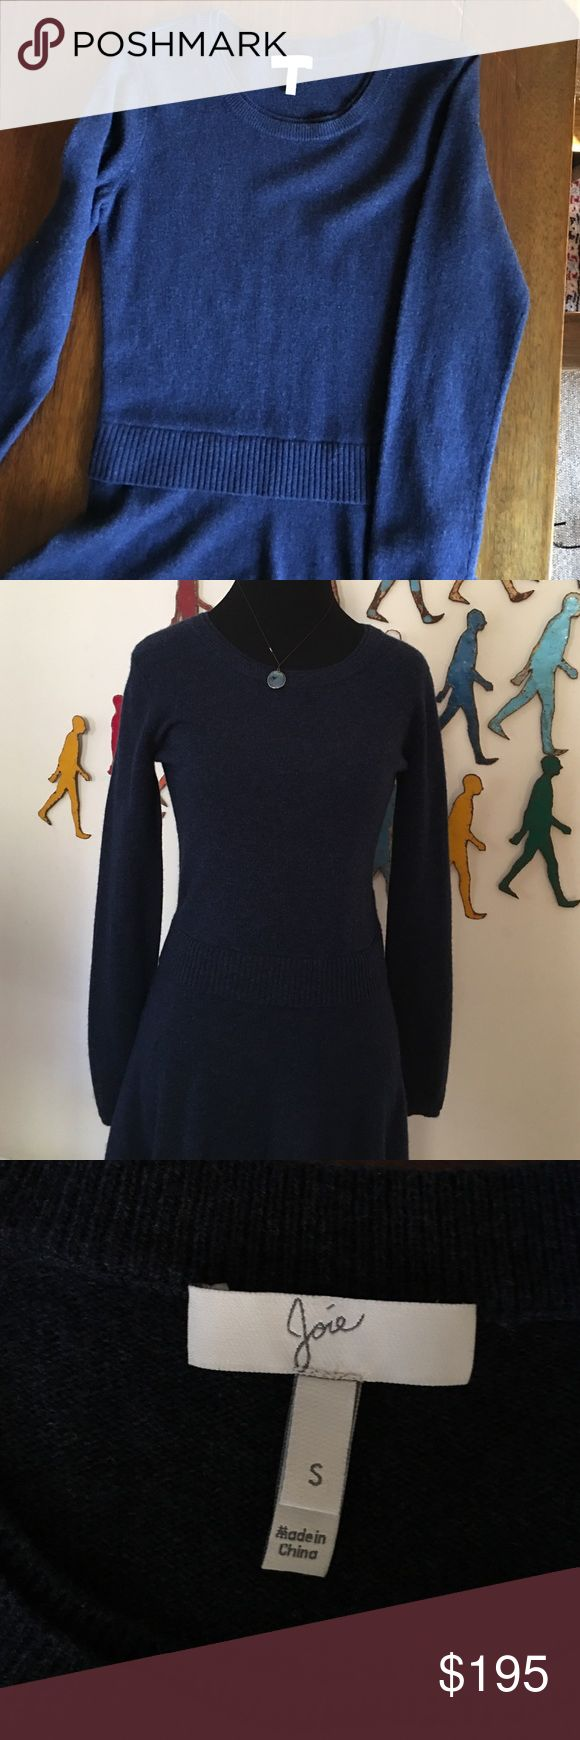 """NWOT S Navy wool/cashmere Joie dress Softest flattering dress in amazing navy color. Never worn.  Waist detail with flare bottom. Shoulder to hem 37"""". Joie Dresses"""